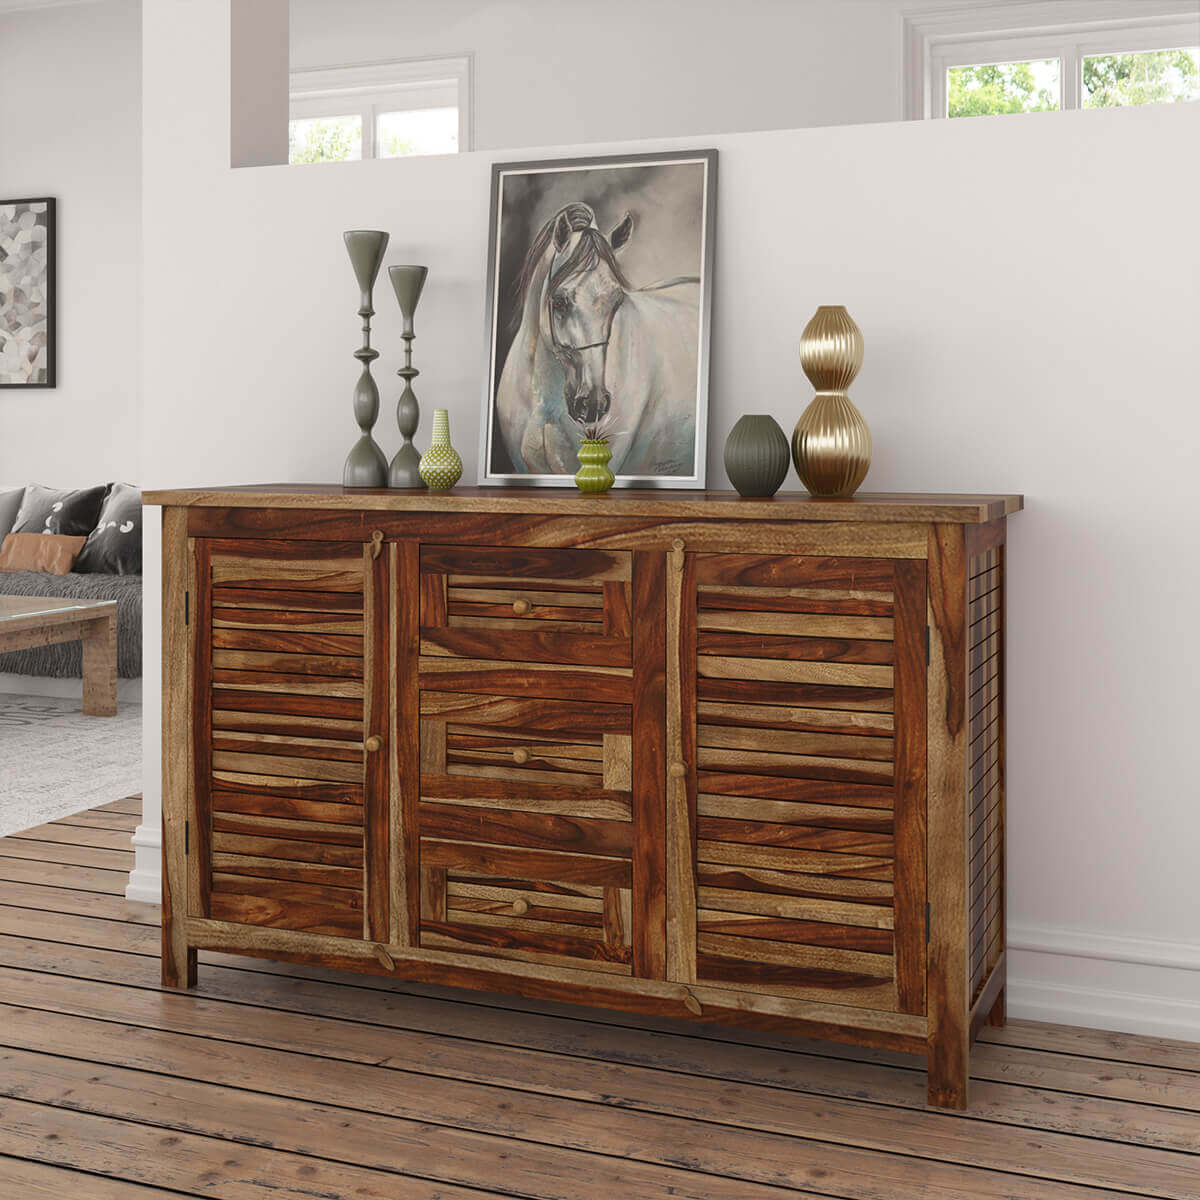 Bedford Handcrafted Rustic Solid Wood 3 Drawer Large Sideboard Cabinet